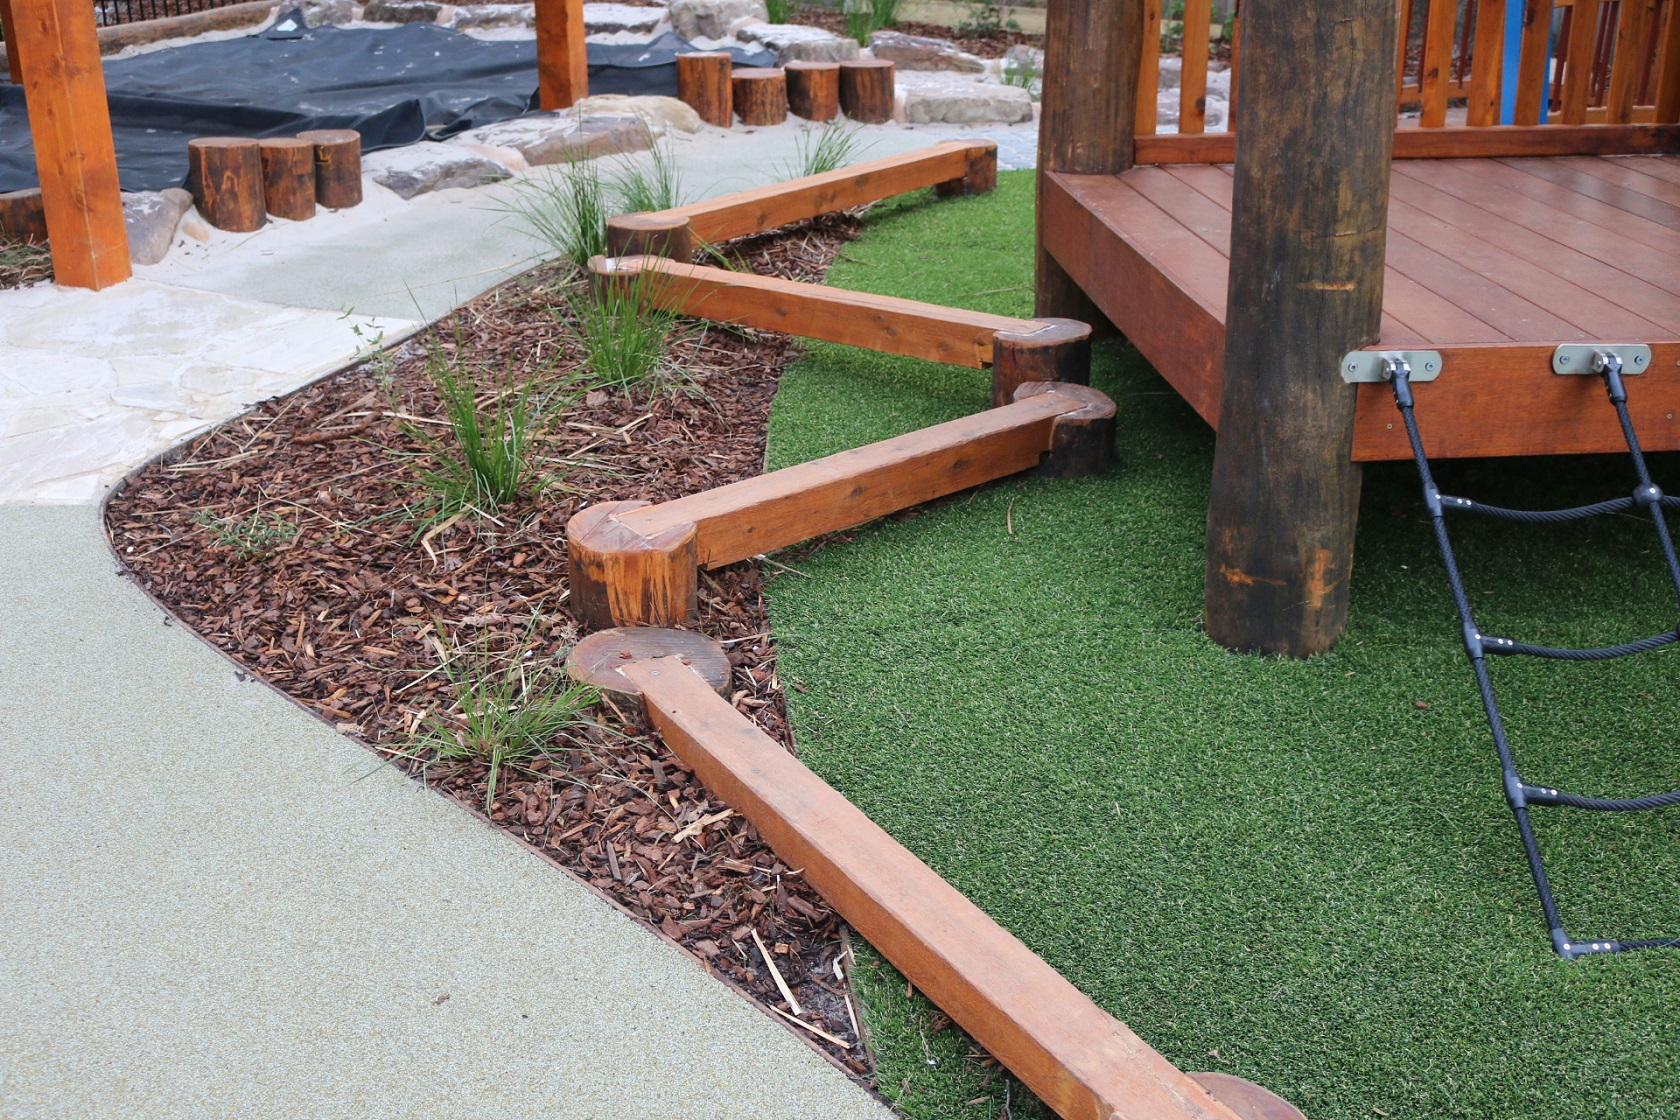 balance beams - greensborough